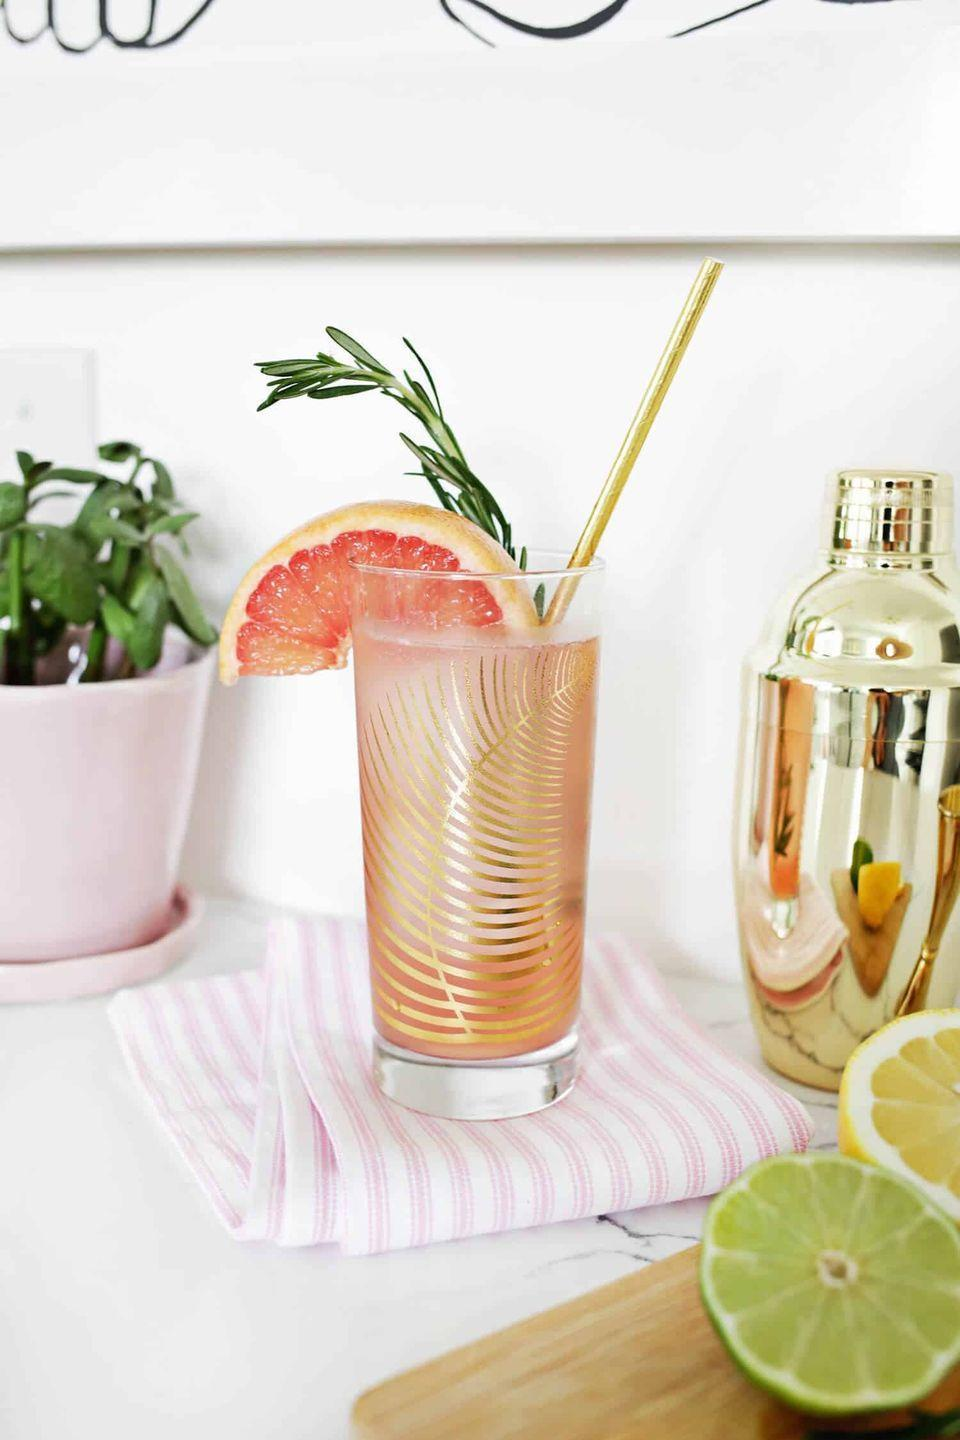 "<p>This sparkling mocktail will give you all the buzz, without the hangover. Serve these at your next girls night and see how fast they fly.</p><p> <strong><em>Get the recipe at <a href=""https://abeautifulmess.com/2017/04/grapefruit-citrus-sparkling-mocktail.html"" rel=""nofollow noopener"" target=""_blank"" data-ylk=""slk:A Beautiful Mess"" class=""link rapid-noclick-resp"">A Beautiful Mess</a>.</em></strong></p>"